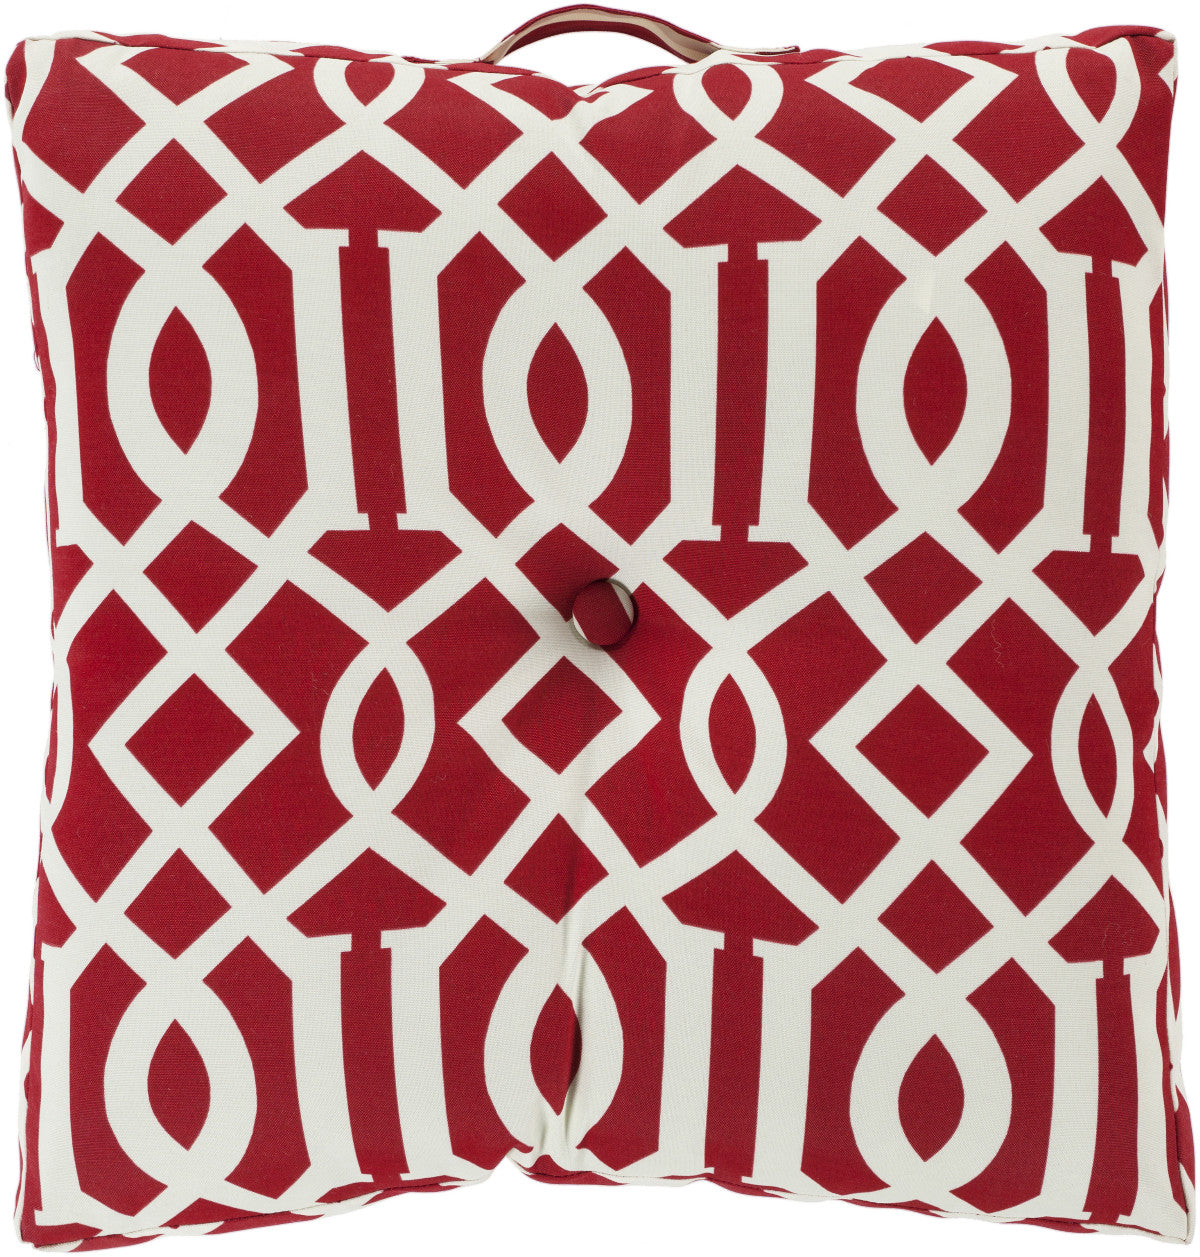 Surya Storm Radiant Roman Numeral ZZ-416 Pillow main image